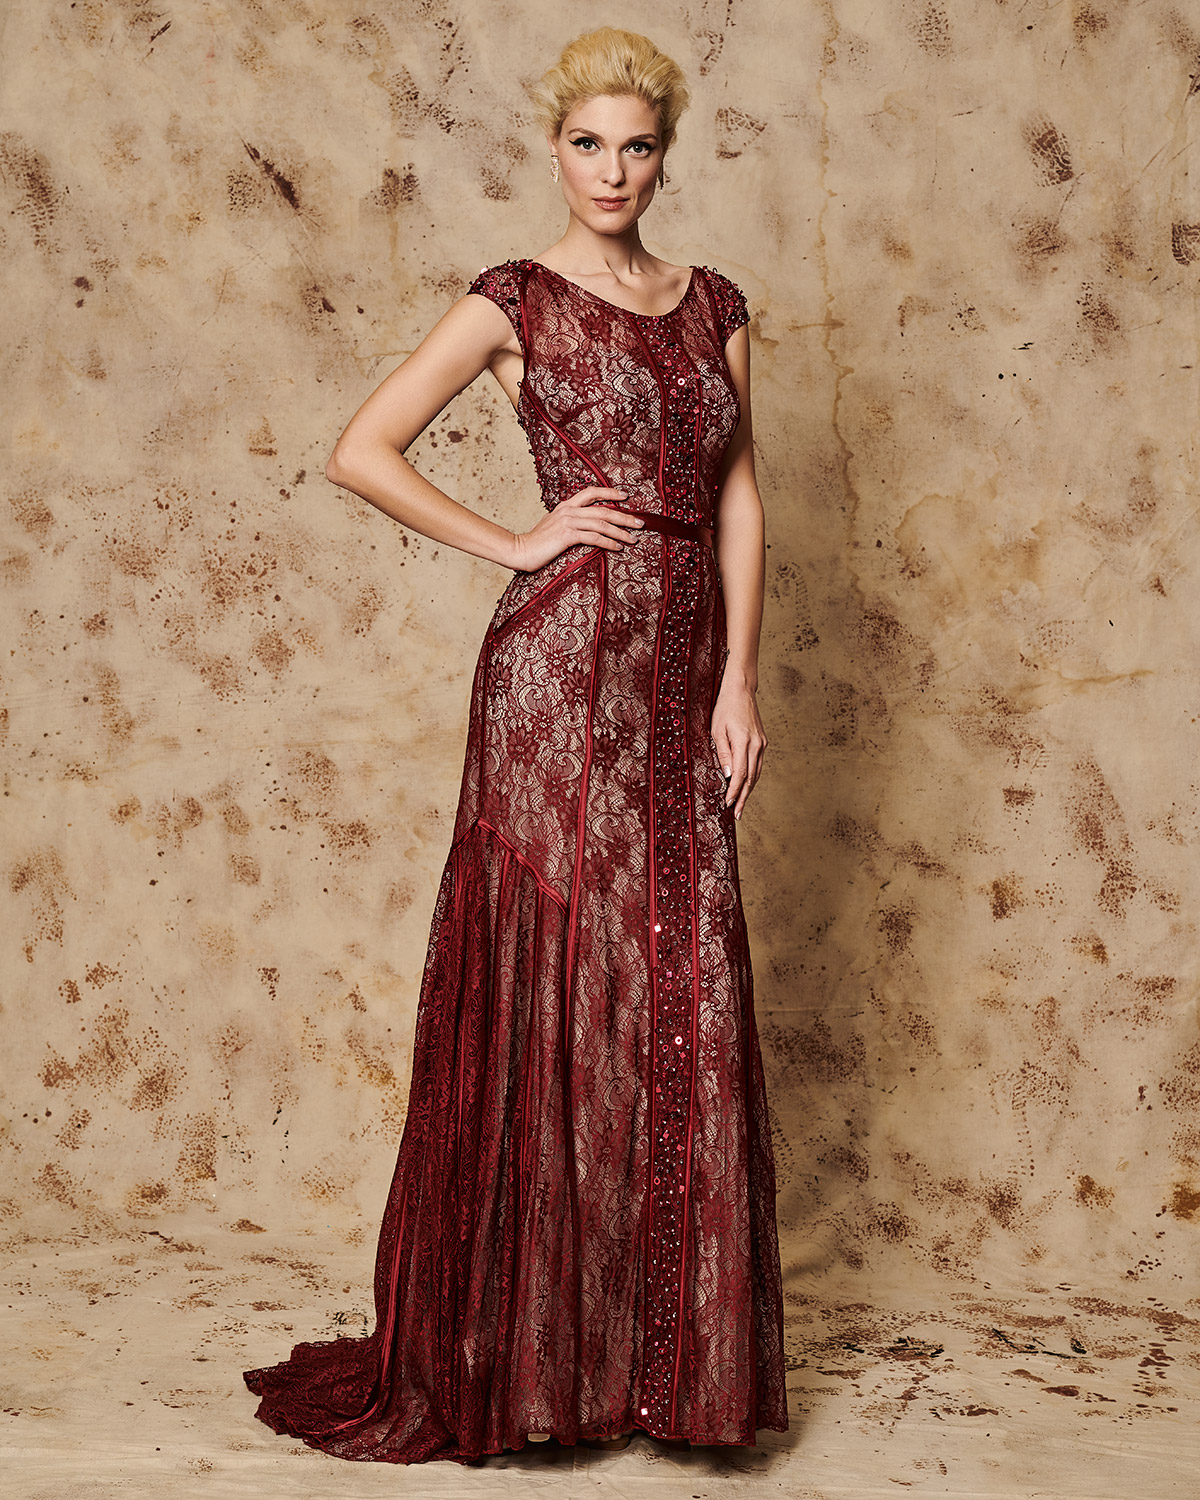 Classic Dresses / Long evening lace dress with beading